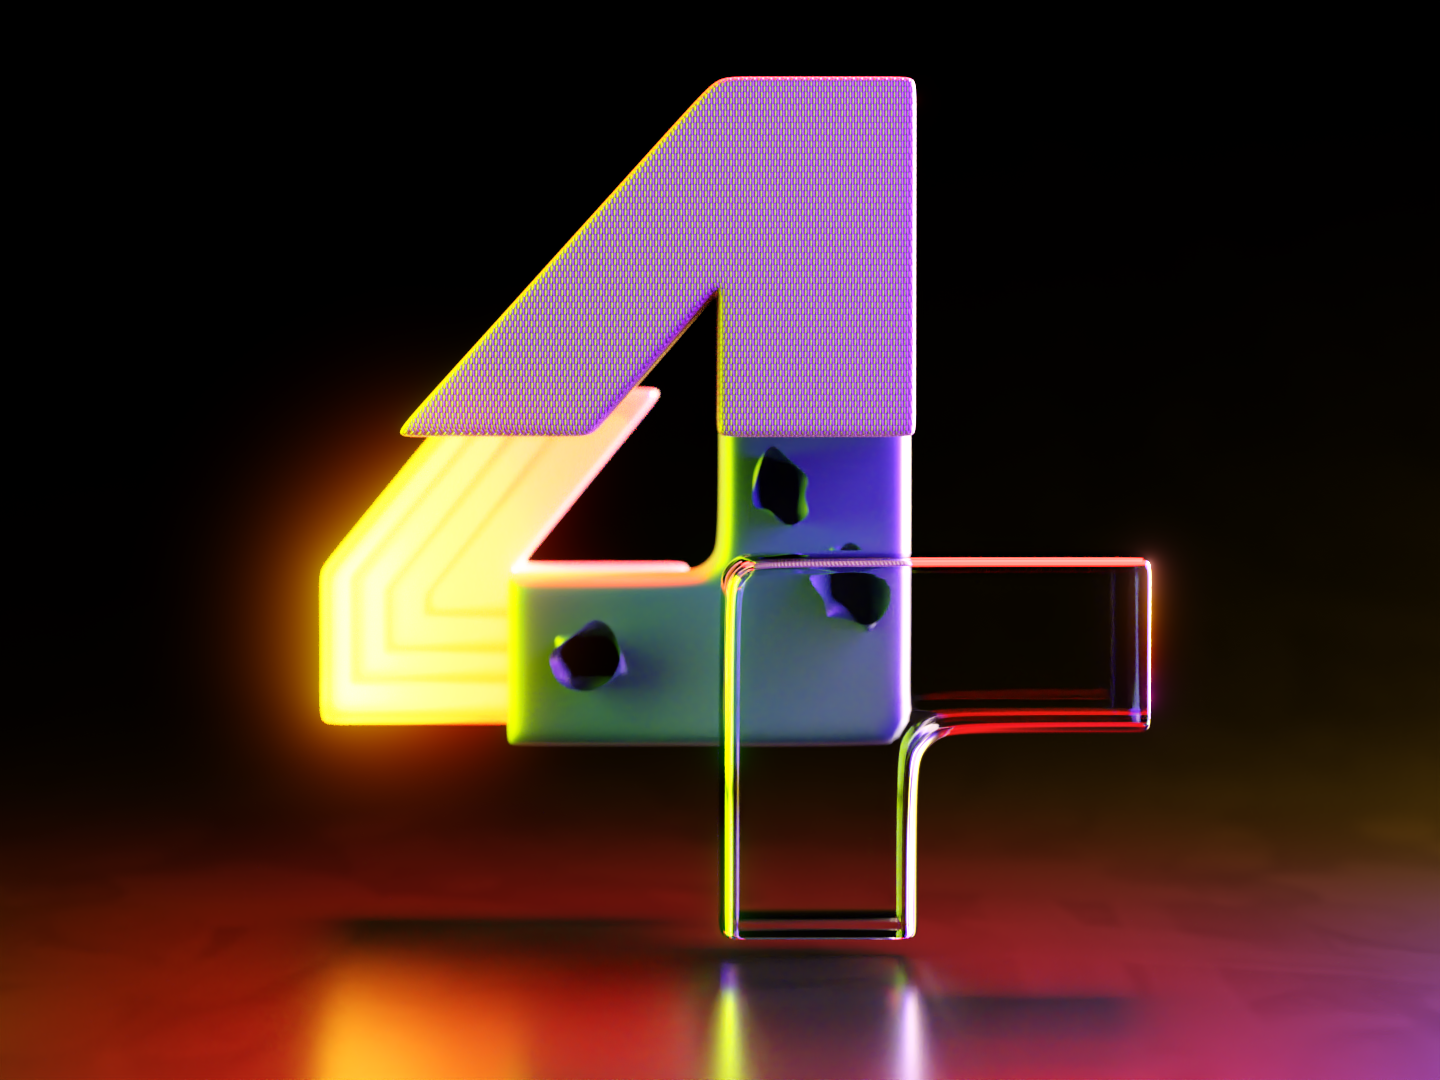 4 - 36DaysofType06 by Anvesh Dunna on Dribbble